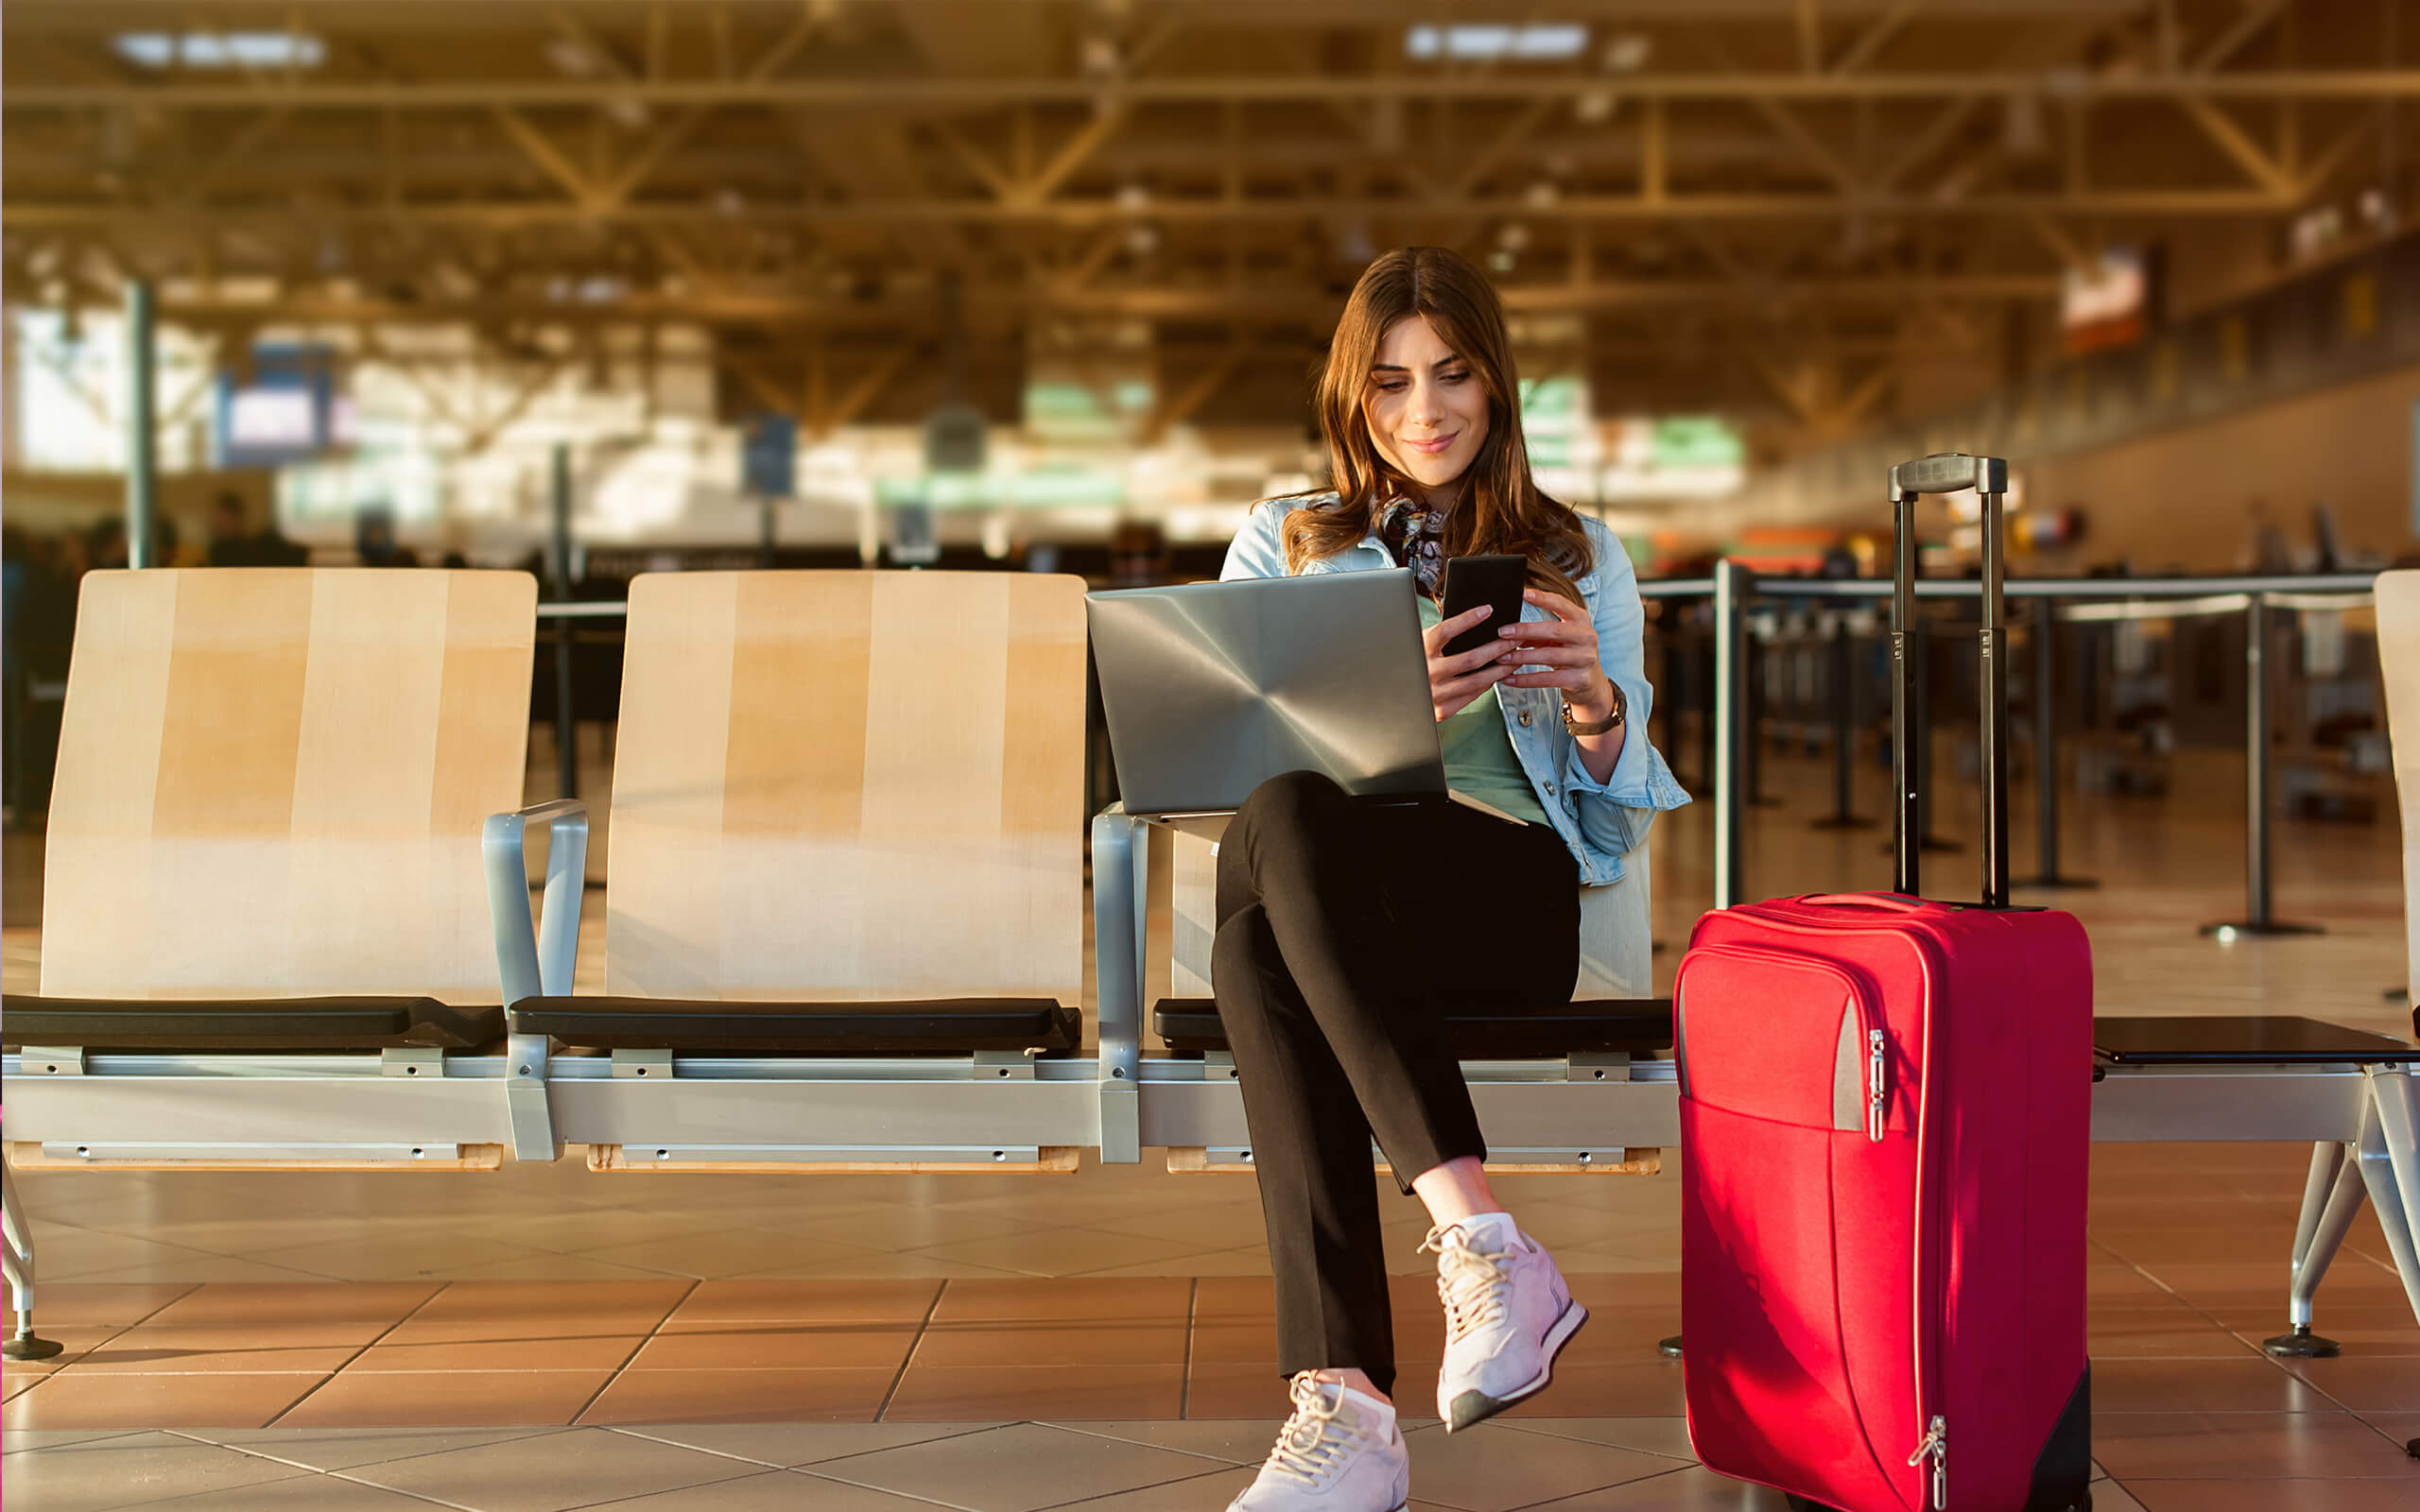 Female student waiting in airport